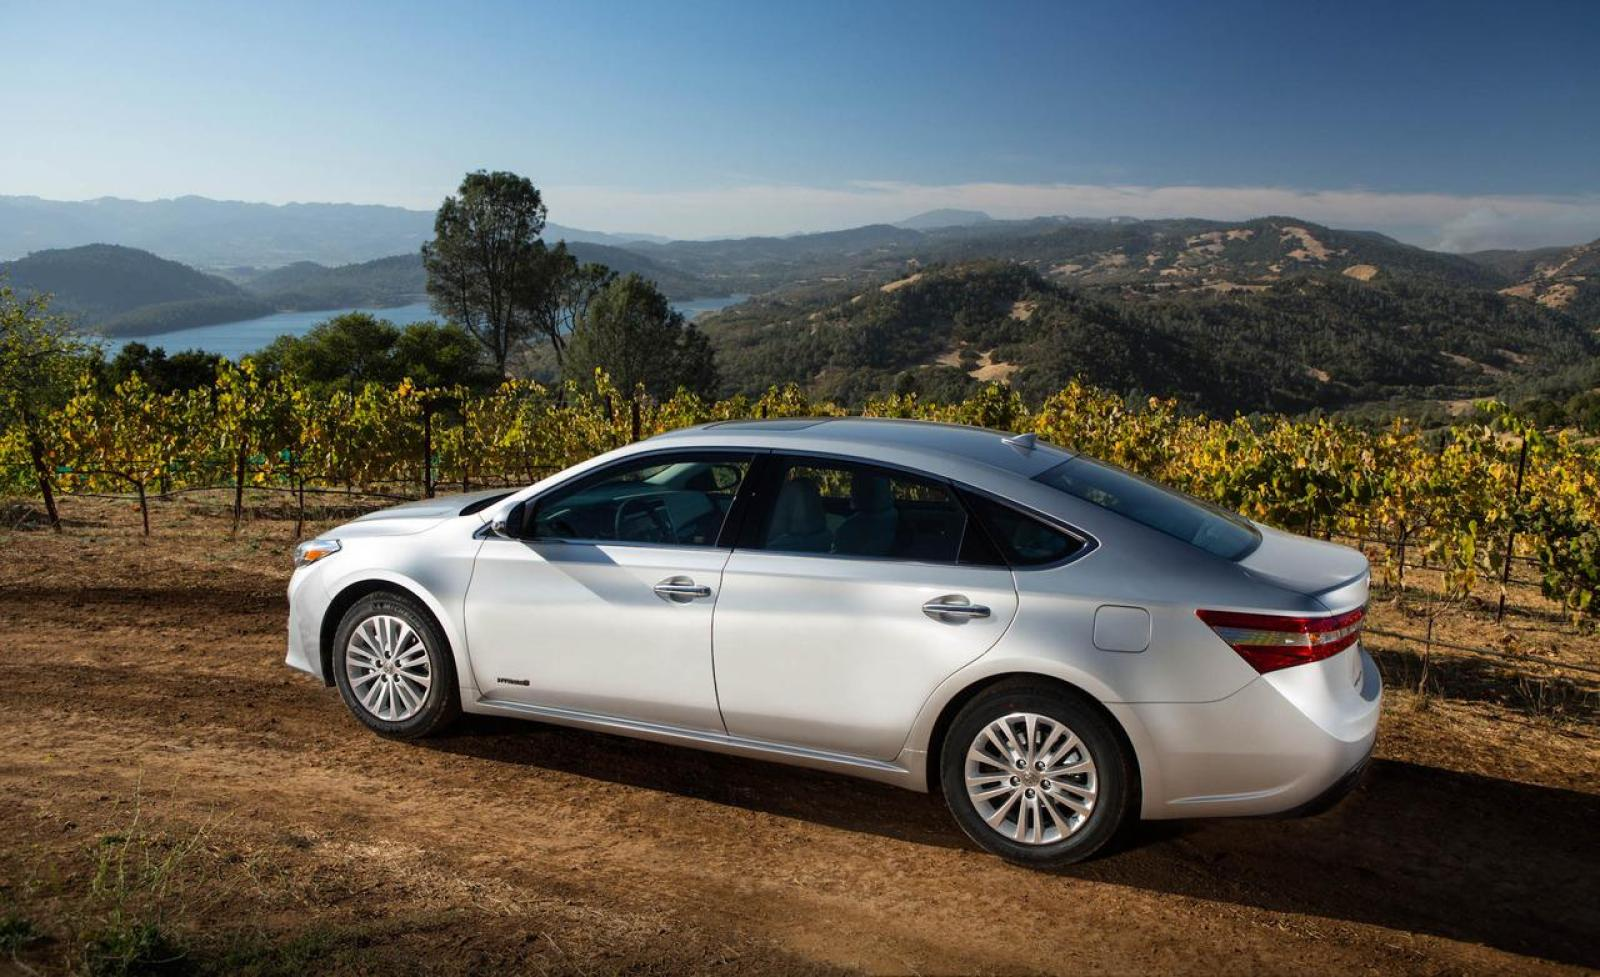 2013 toyota avalon hybrid information and photos zombiedrive. Black Bedroom Furniture Sets. Home Design Ideas